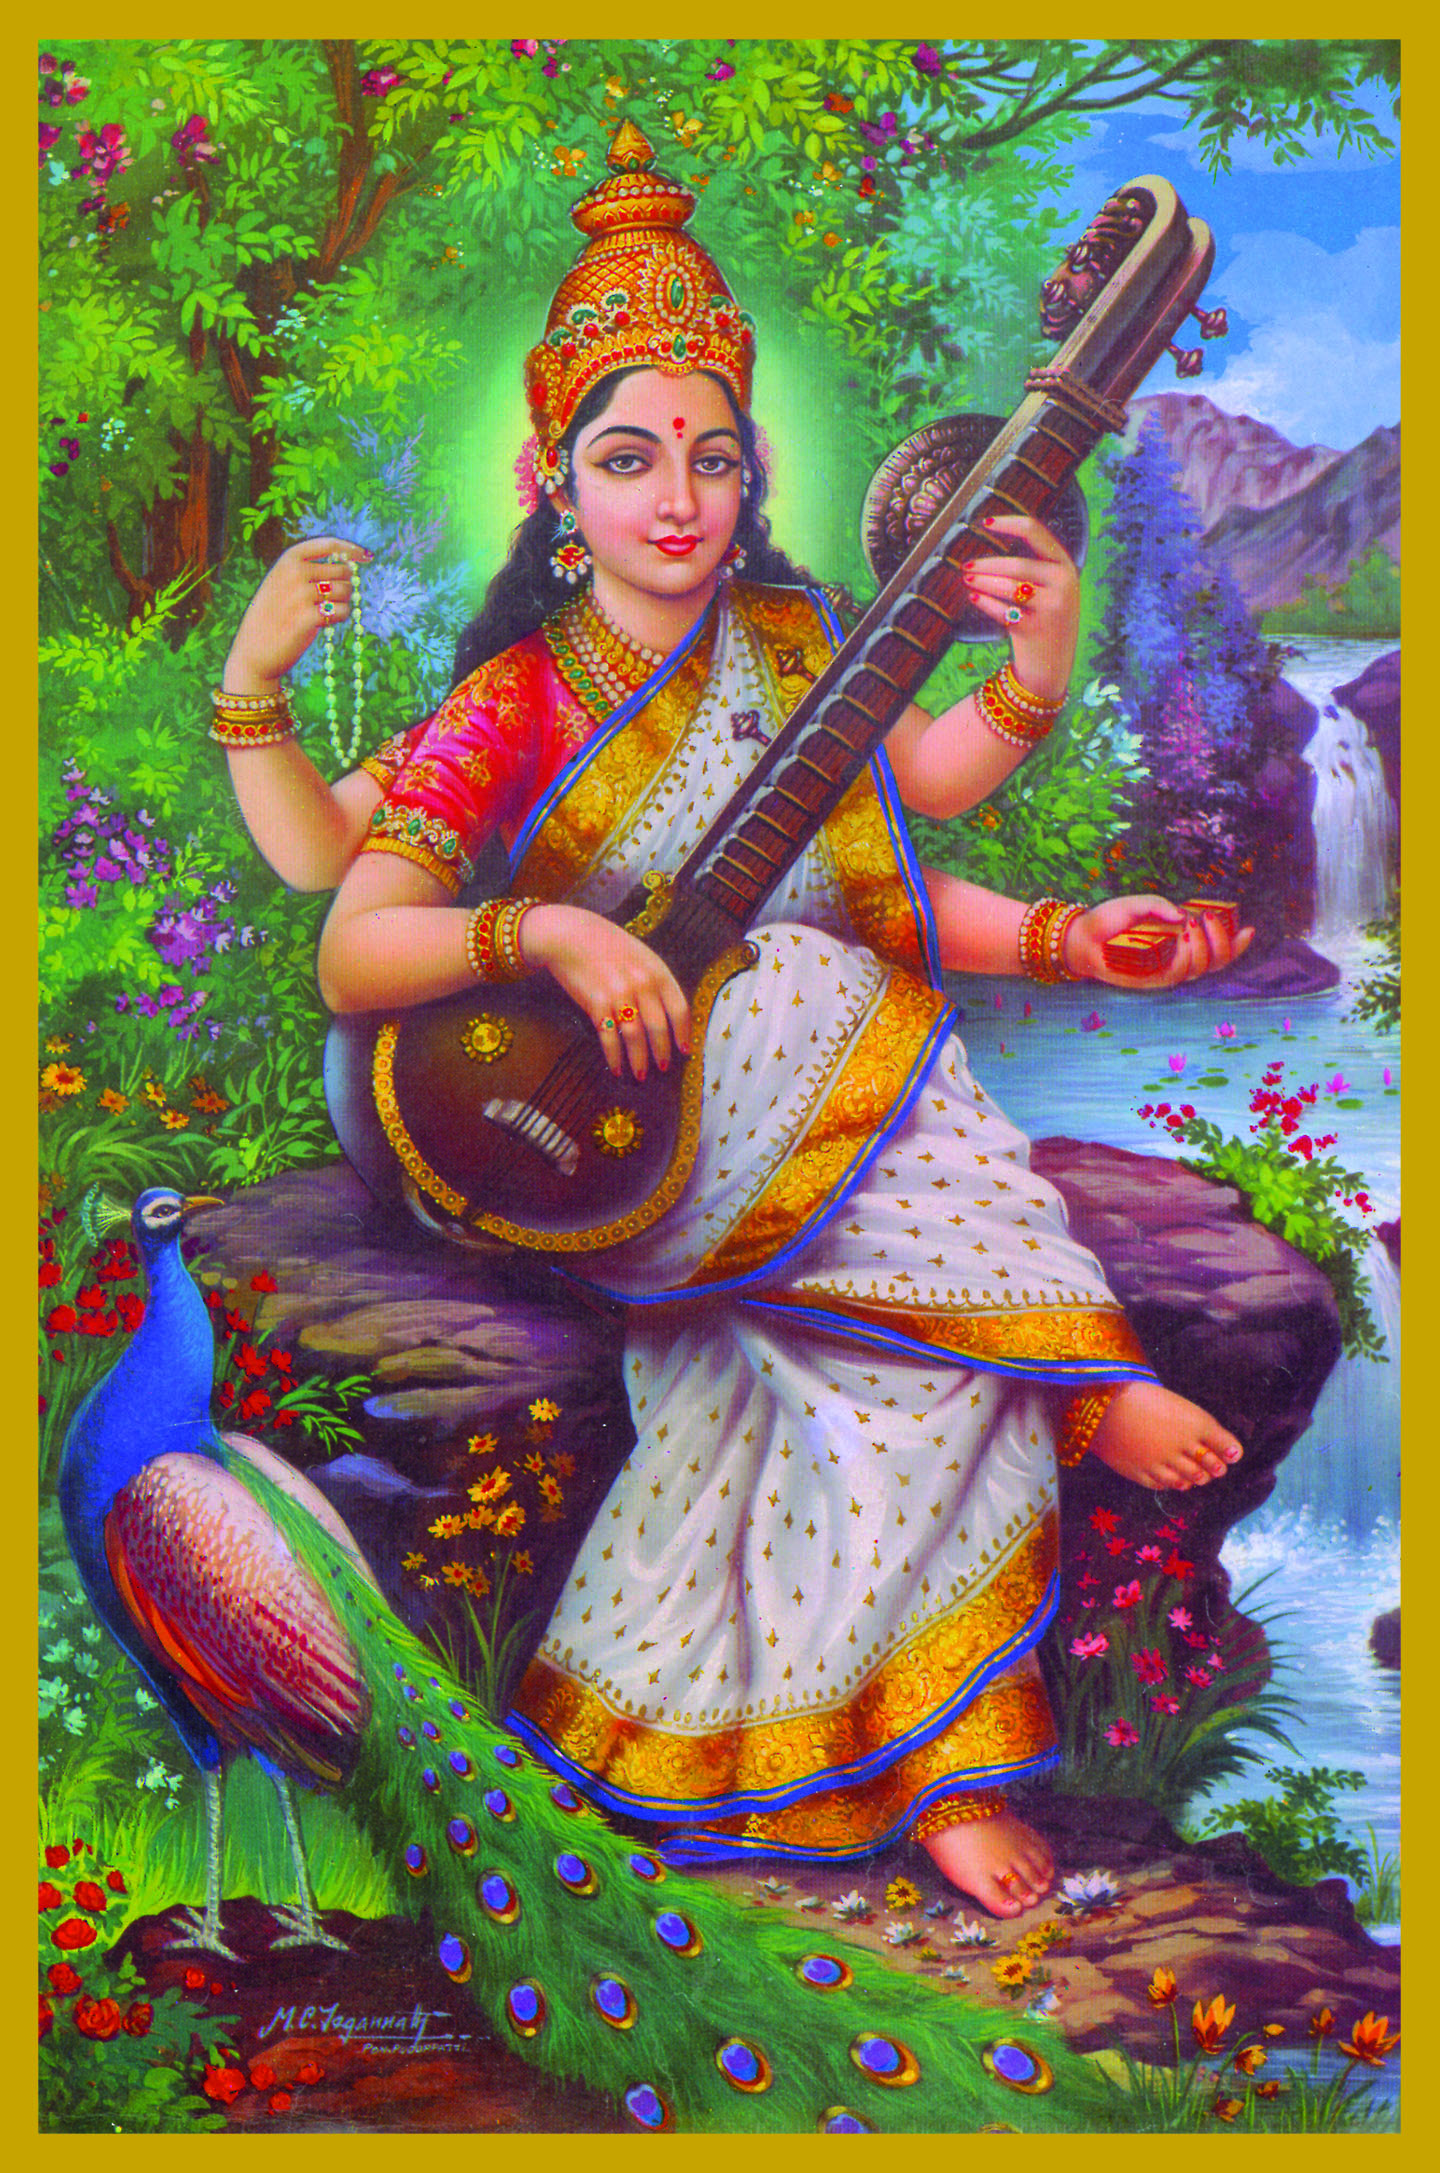 SAR-SIT - SARASWATIGoddess of Creativity, Inspiration and LanguageSaraswati is the consort of Brahma, the creator -- she is therefore the Co-Creatrix or mother of the whole of creation. Saraswati means 'the flowing one.' She is the personification of all knowledge-- arts, language, music, mathematics and science.